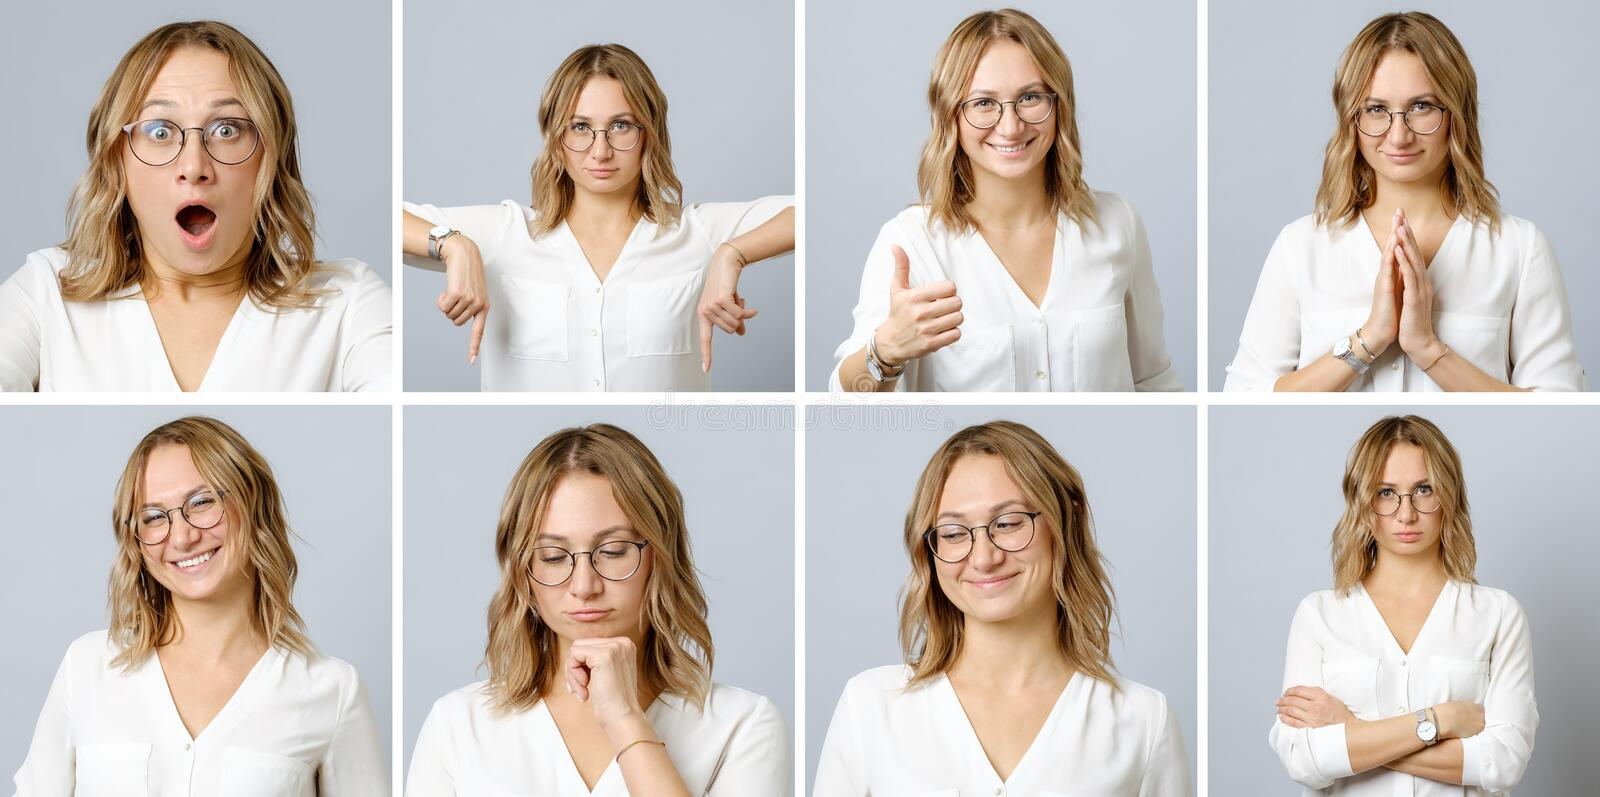 Beautiful woman with different facial expressions and gestures stock photo